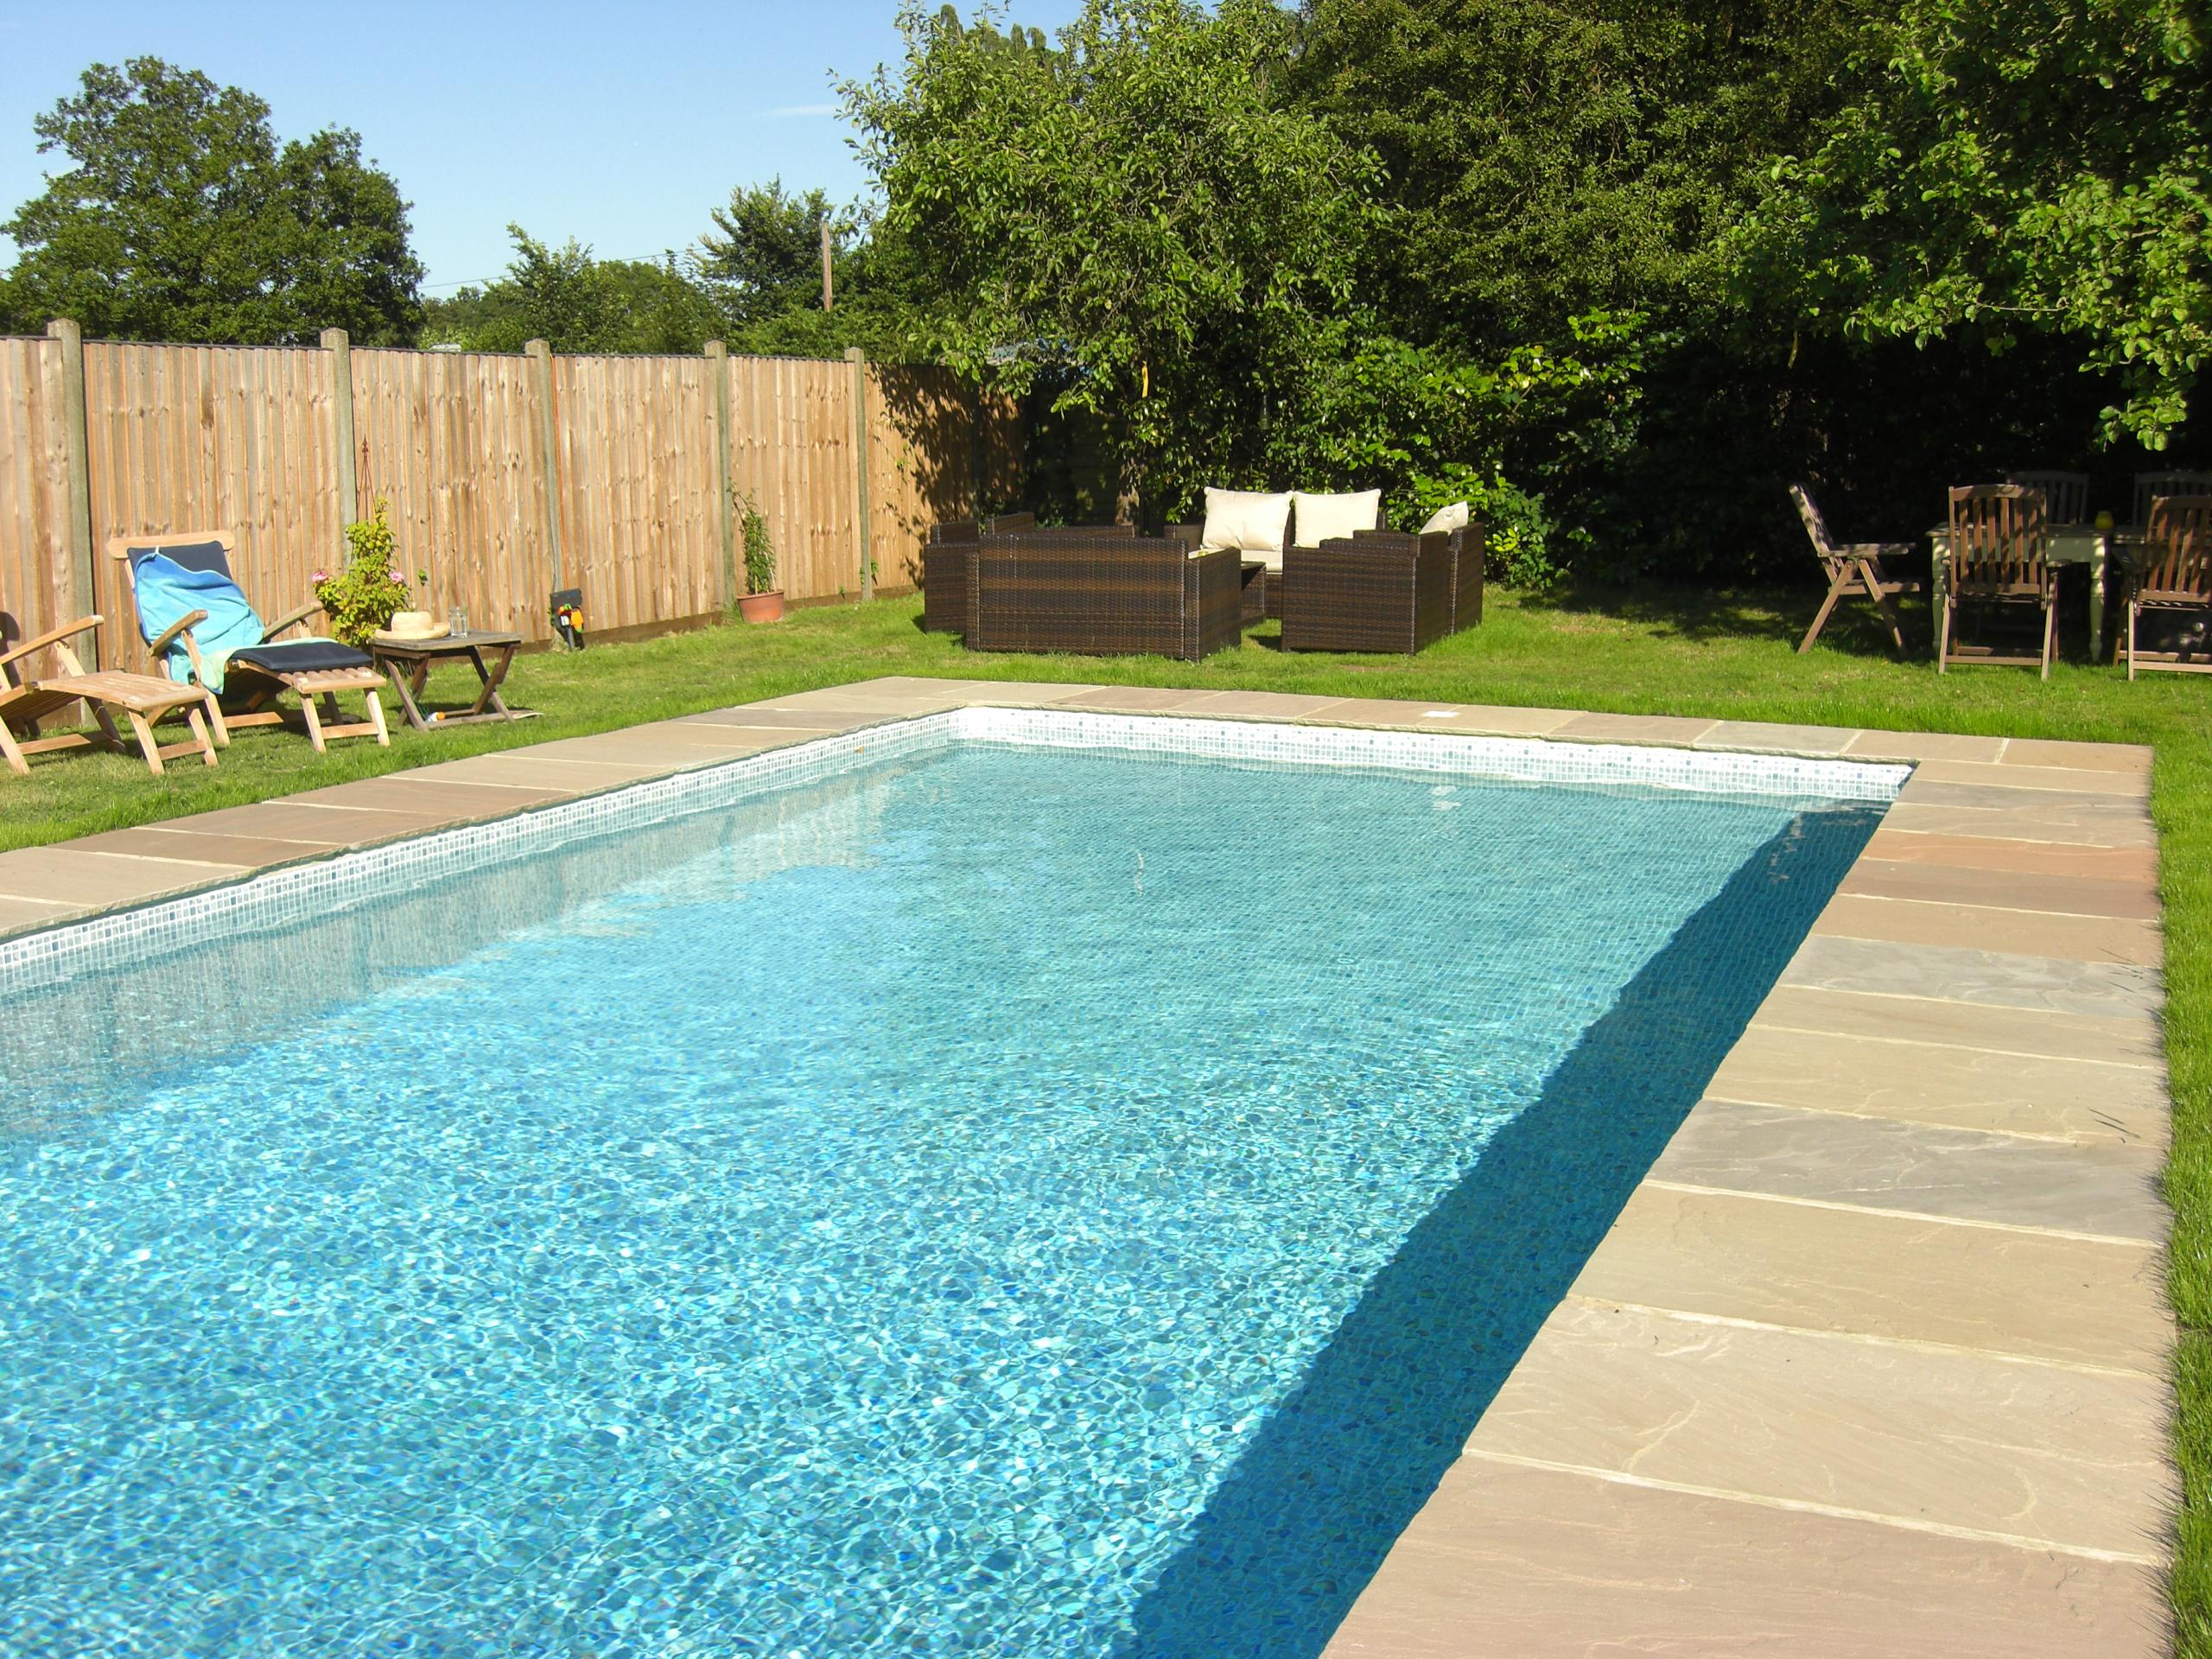 Pool liner installation ascot pools swimming pool for Swimming pool installation companies